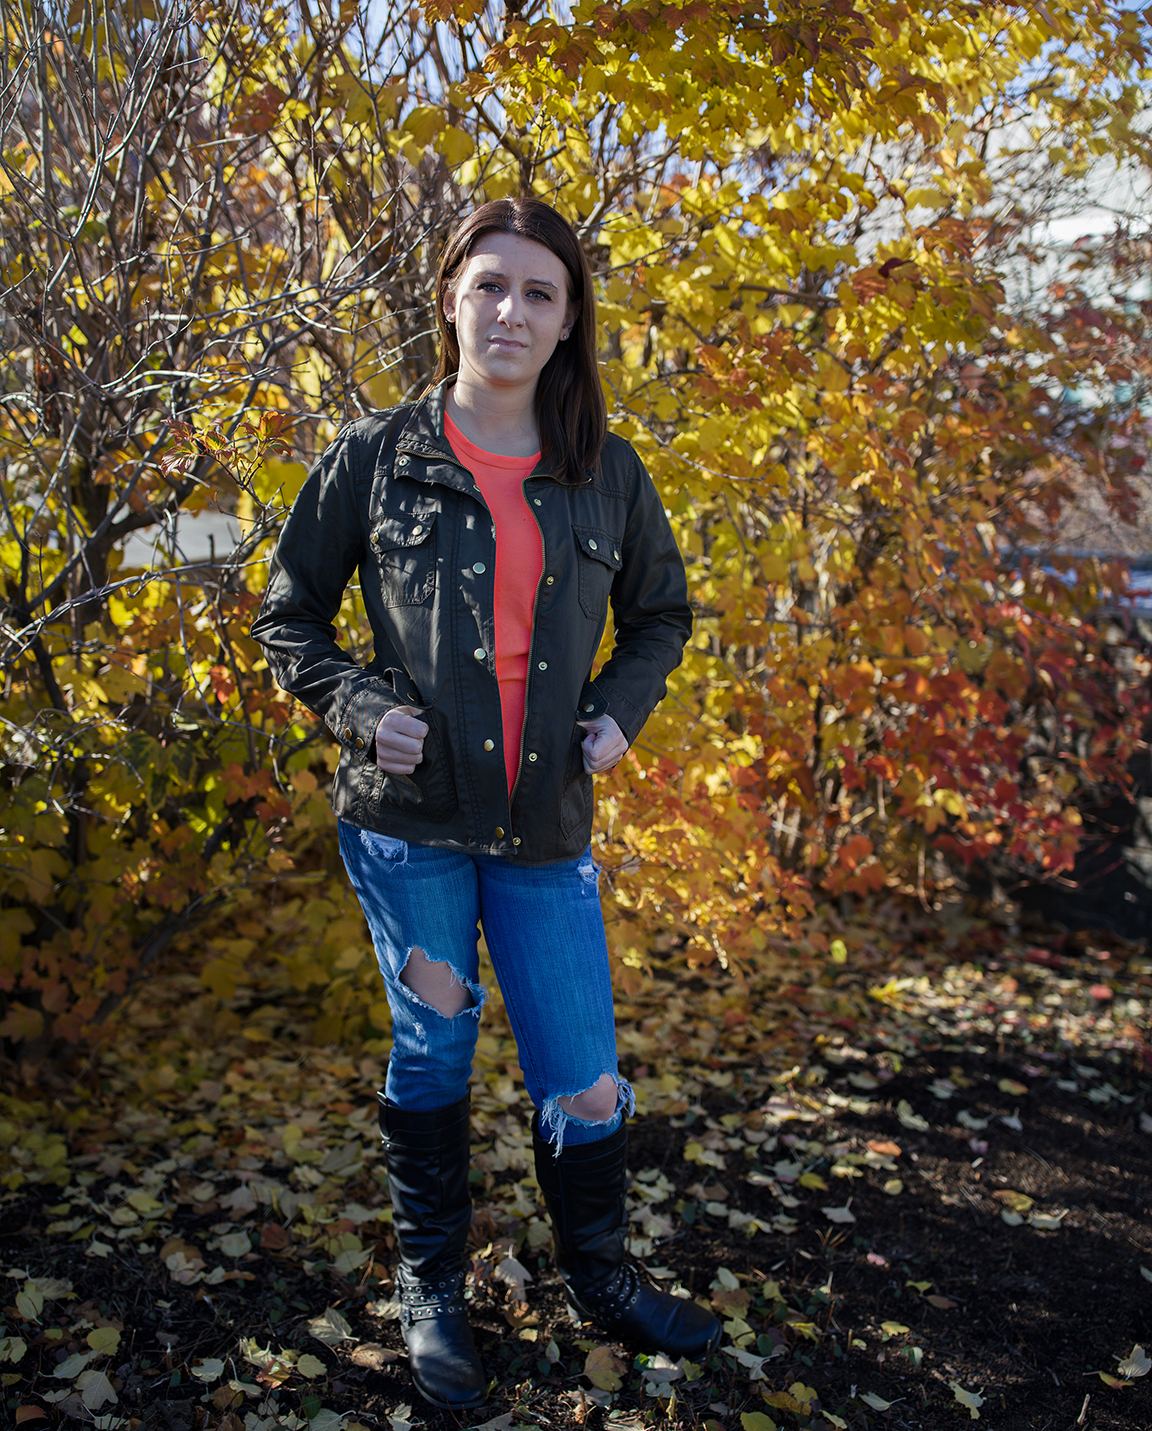 Megan McCarthy stands outside the University of Vermont Medical Center November 24, 2016 in Burlington, Vermont where she had a sonogram to determine the health of her baby girl delivered March 2017. Megan was trafficked from Vermont to Connecticut by a man who once supplied heroin to her and eventually became her pimp.